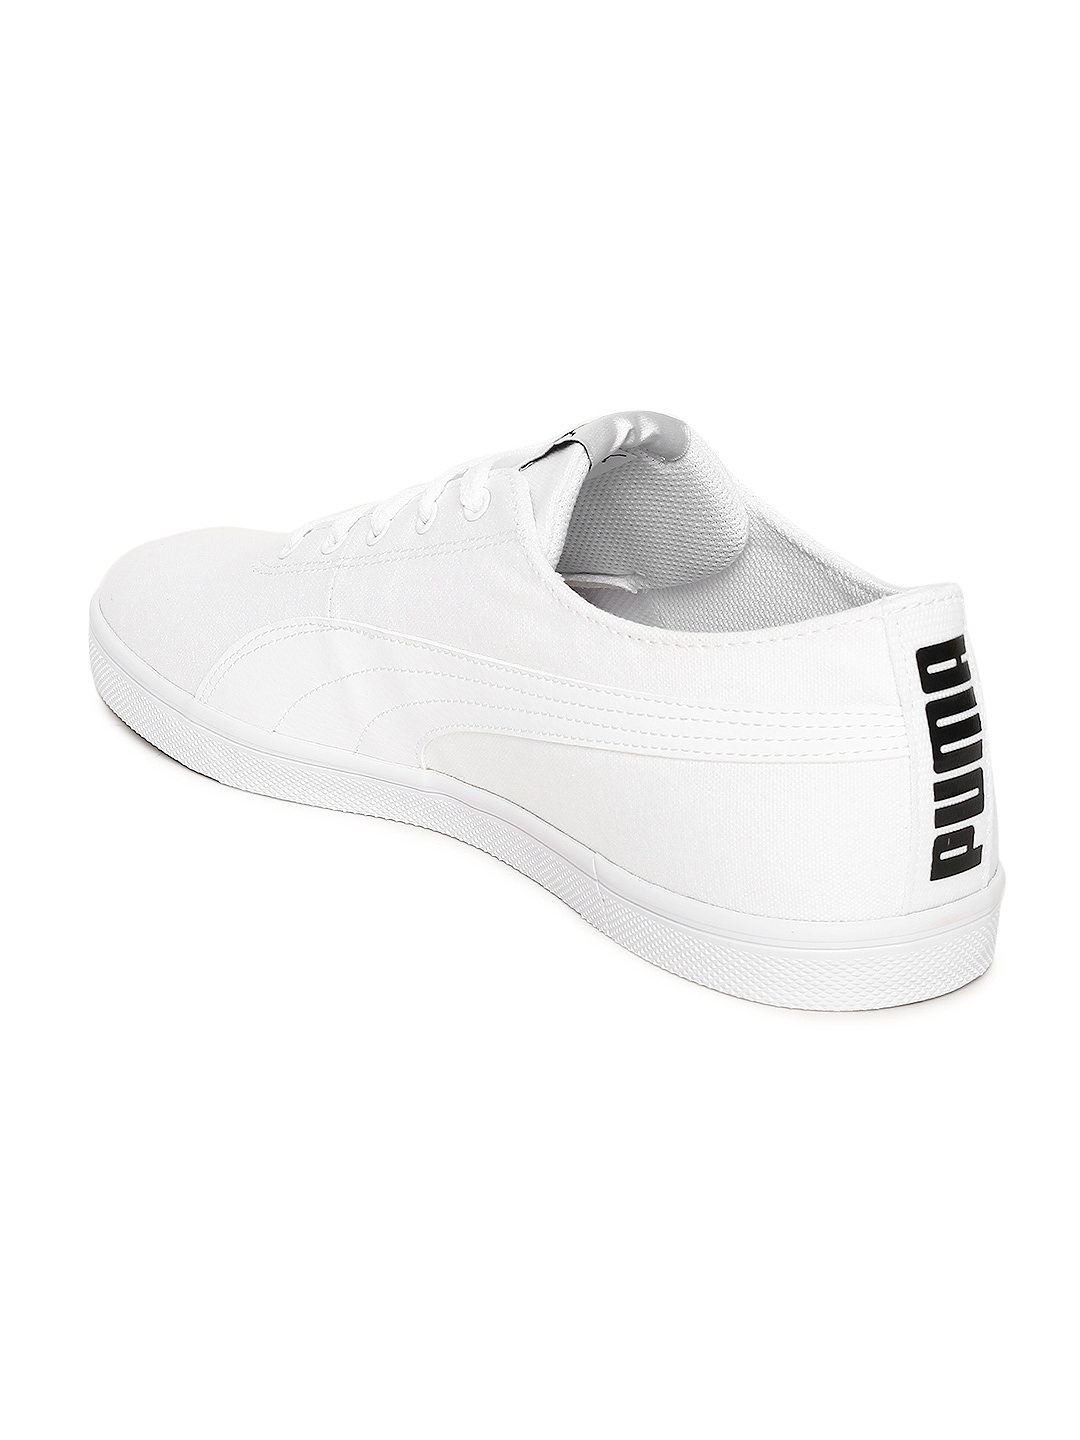 30a154f0199c Buy Puma Men White Urban Sneakers - Casual Shoes for Men 2429557 ...